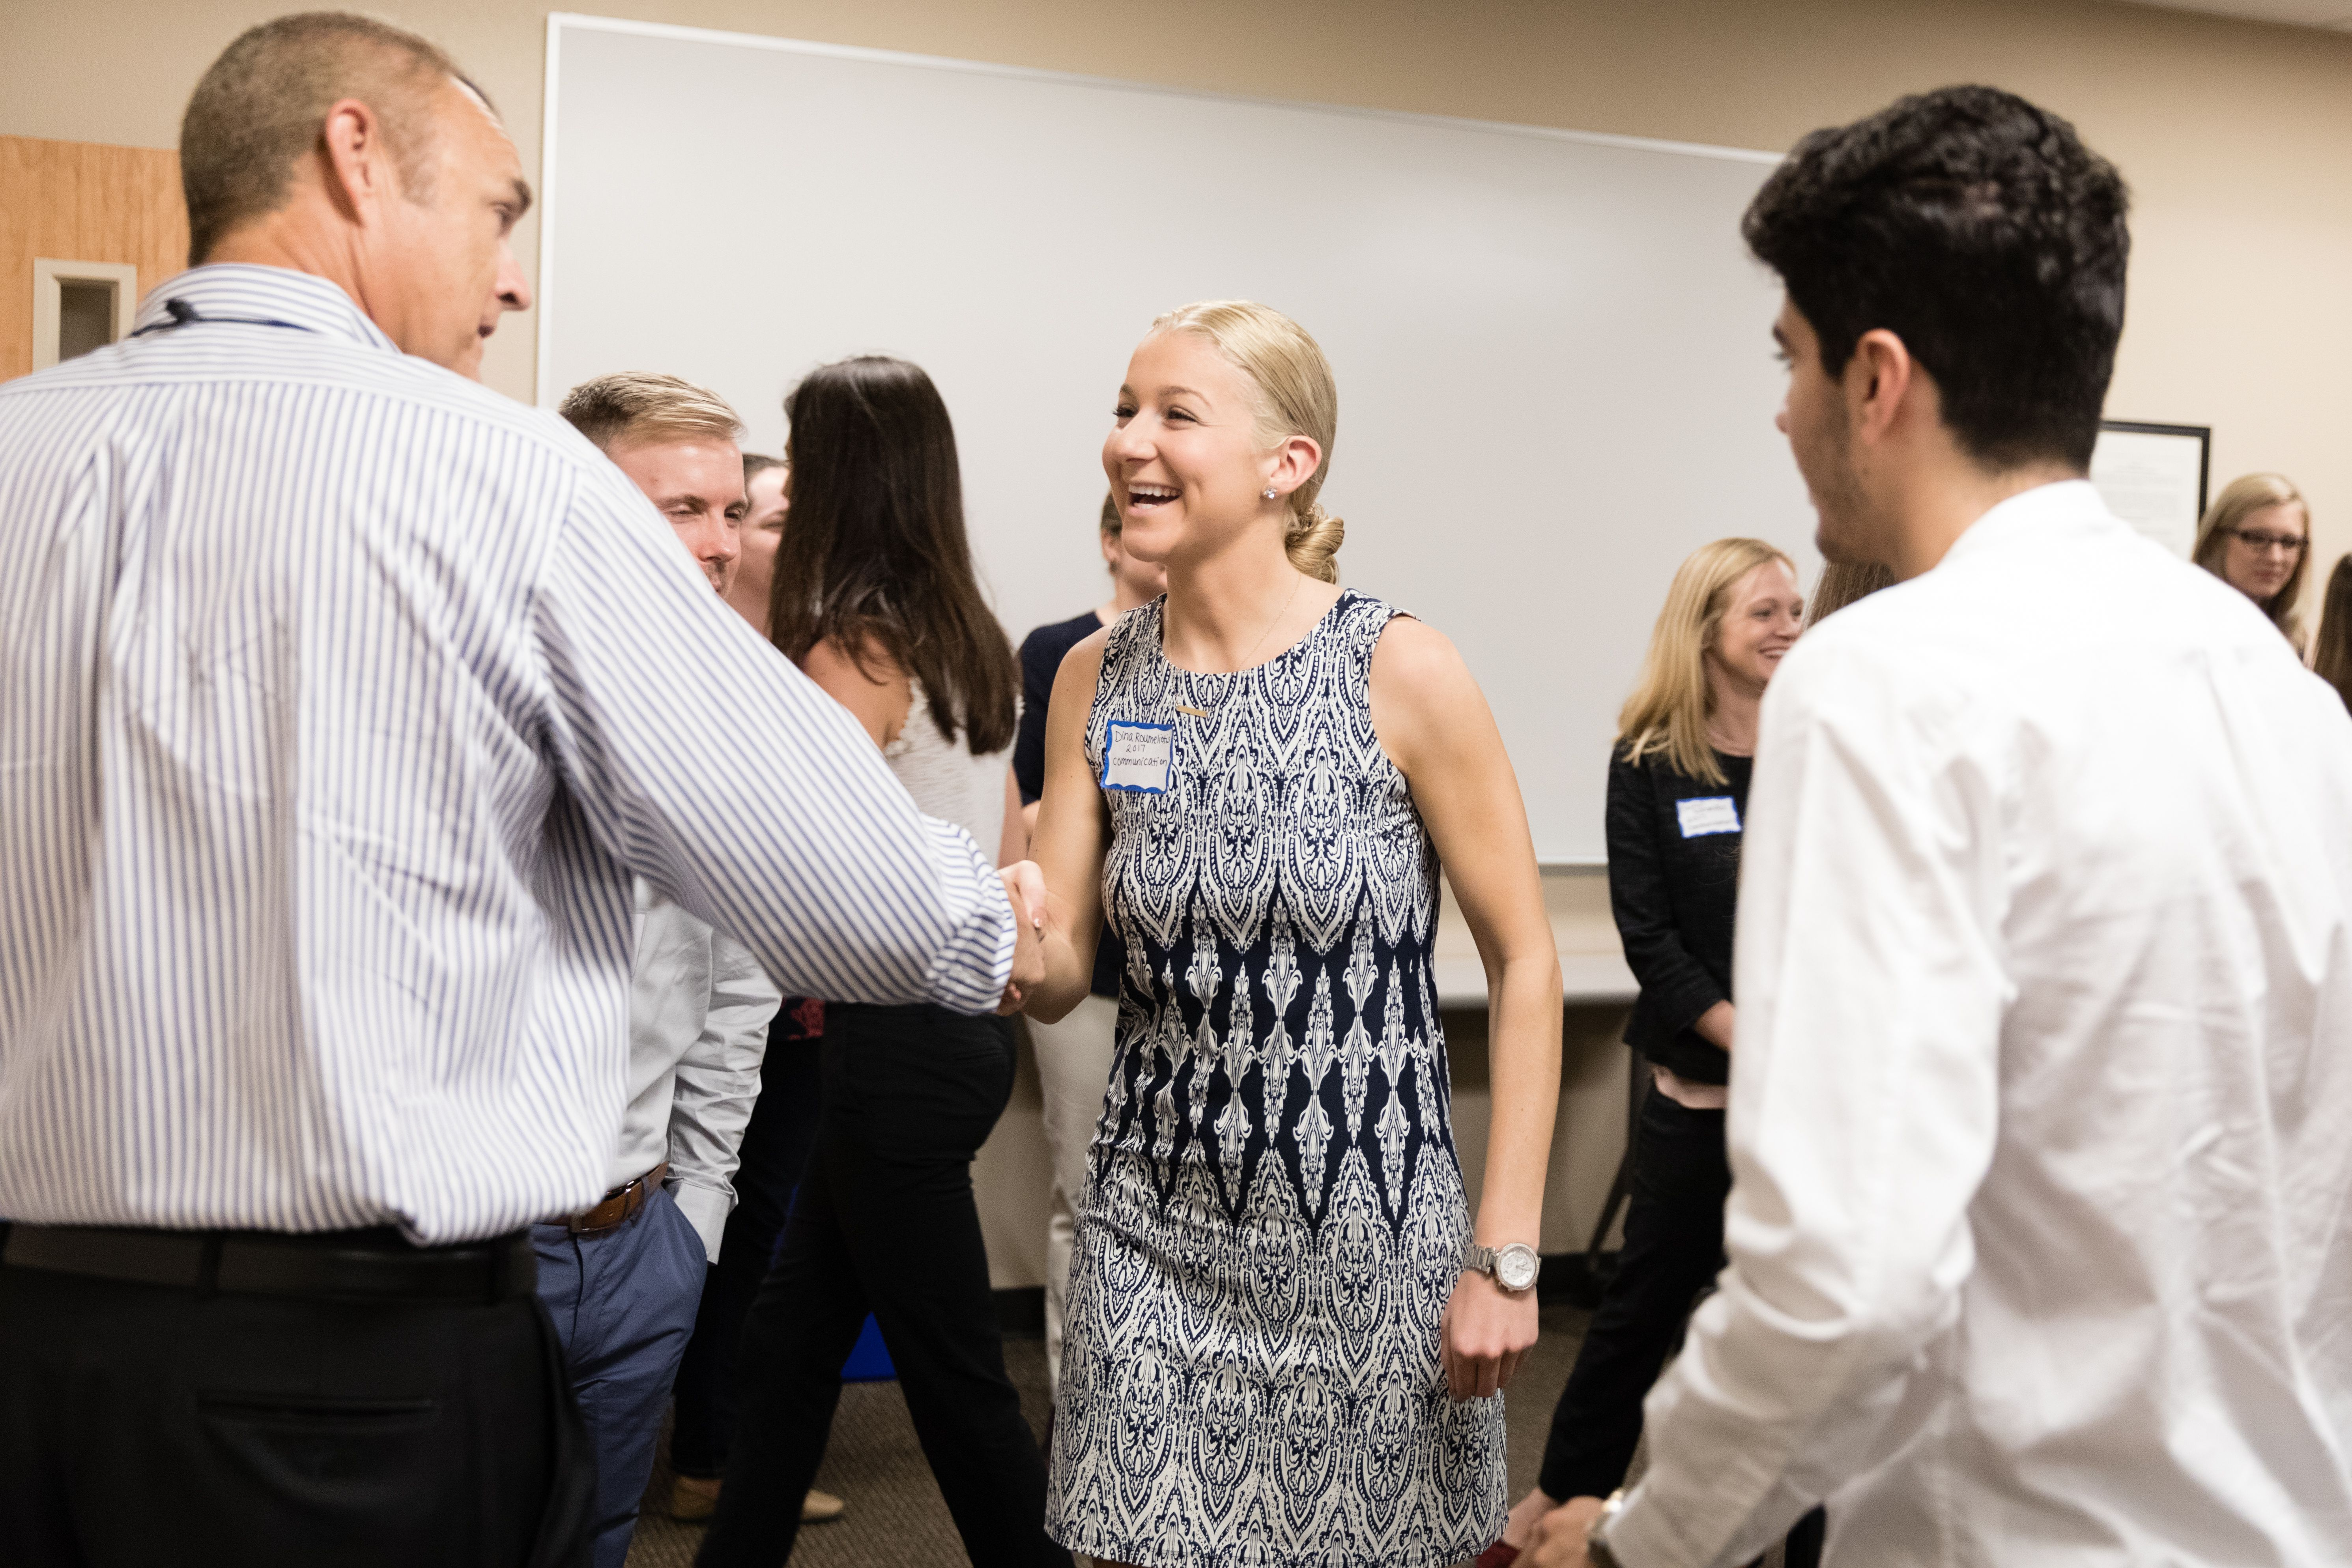 A college student greeting the CEO of a local company.